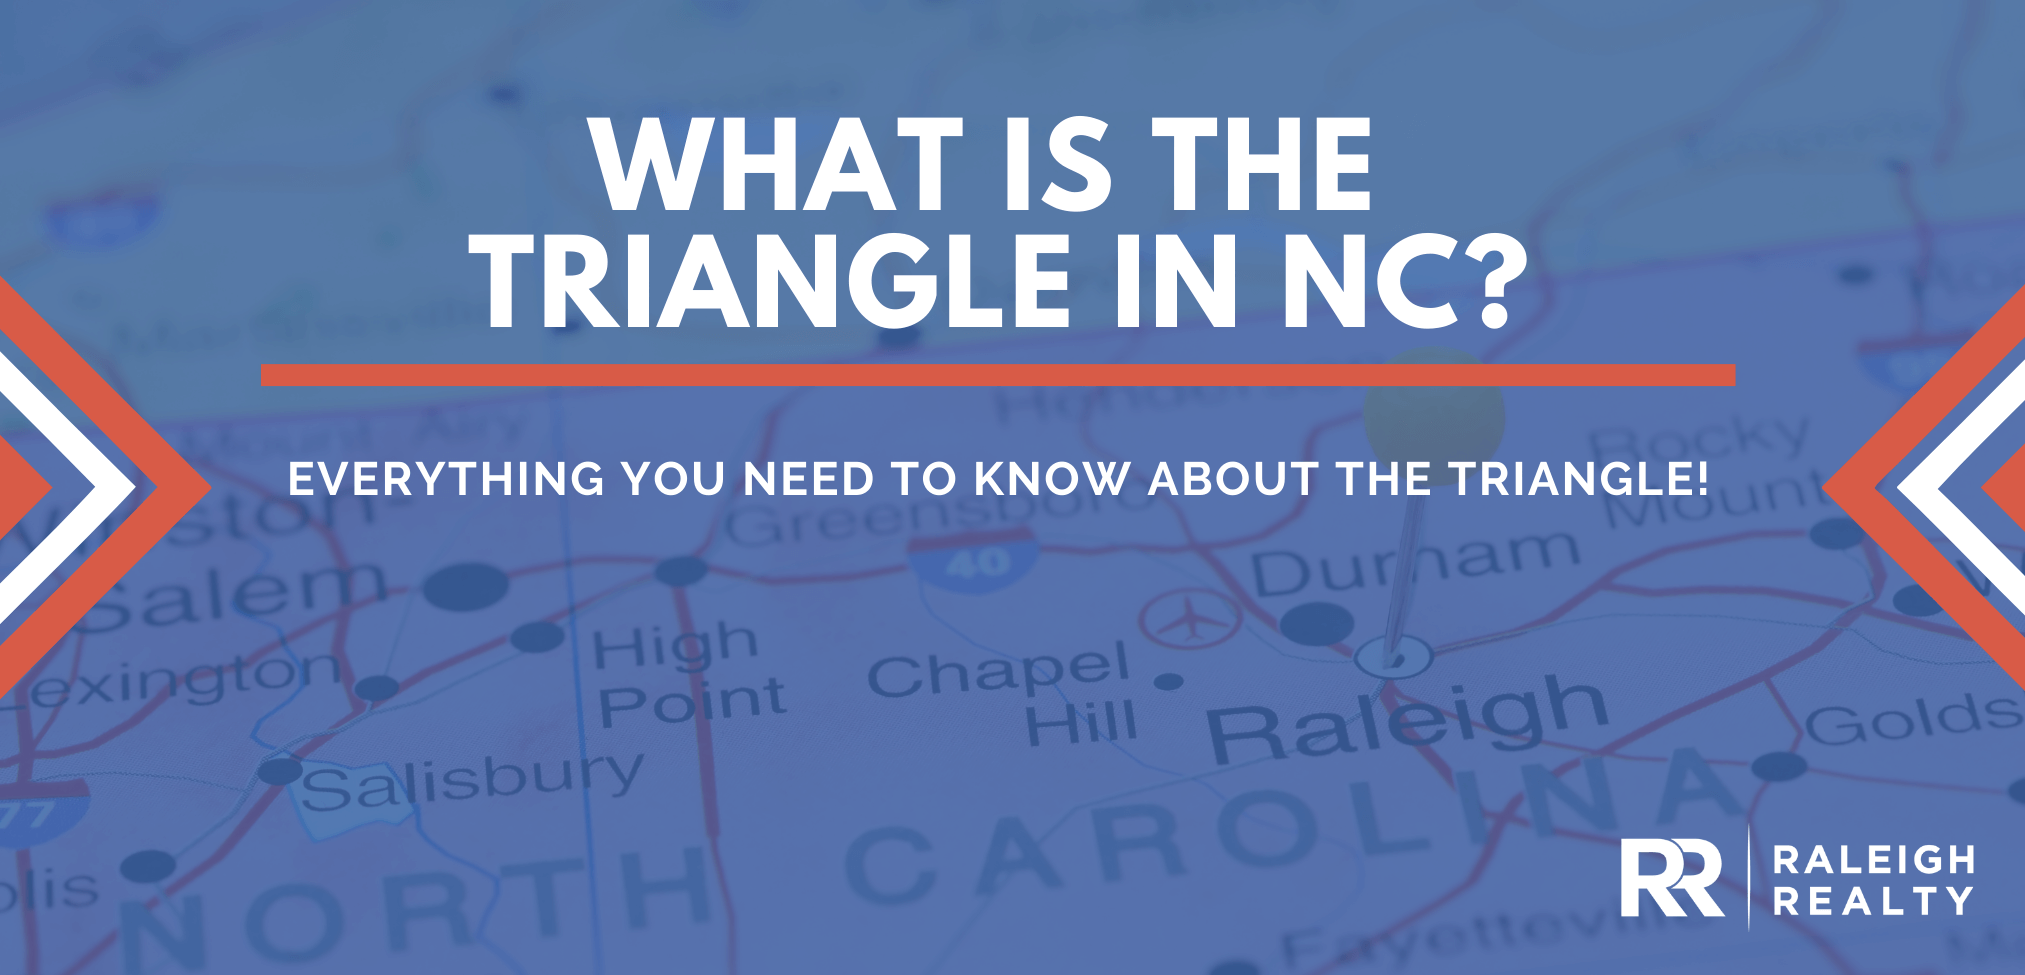 What is the Triangle in NC?